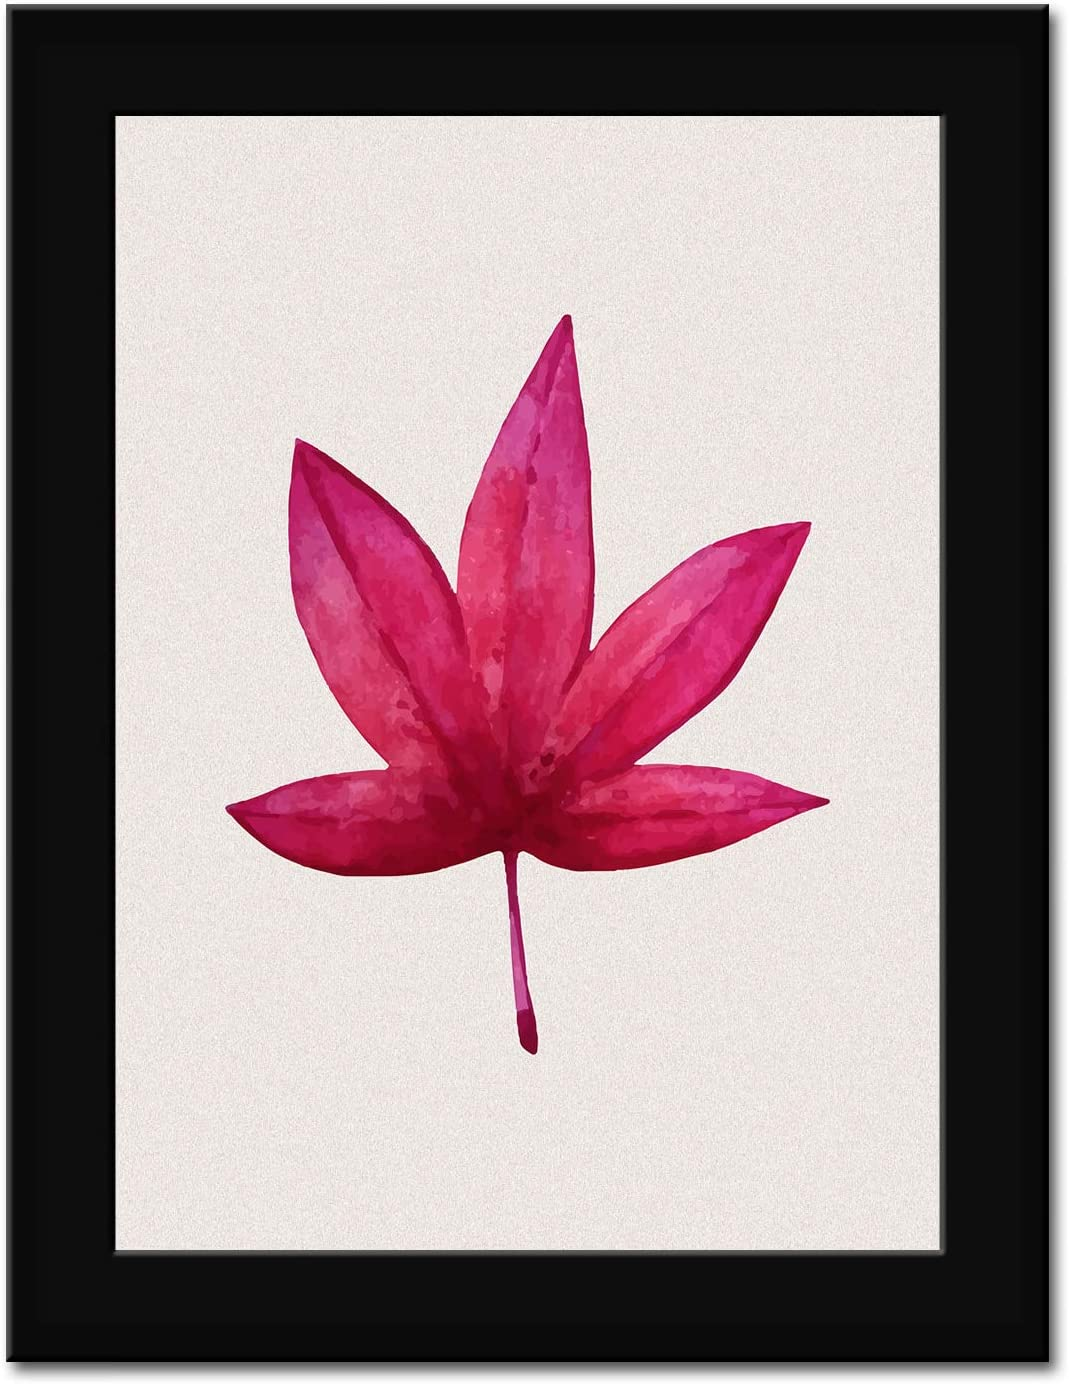 Leaf - Red Maple Leave plant - FRAMED - Canvas Print Home Decor Desk Stand and Wall Art, Black Real Wood Frame, Pink, 7x9